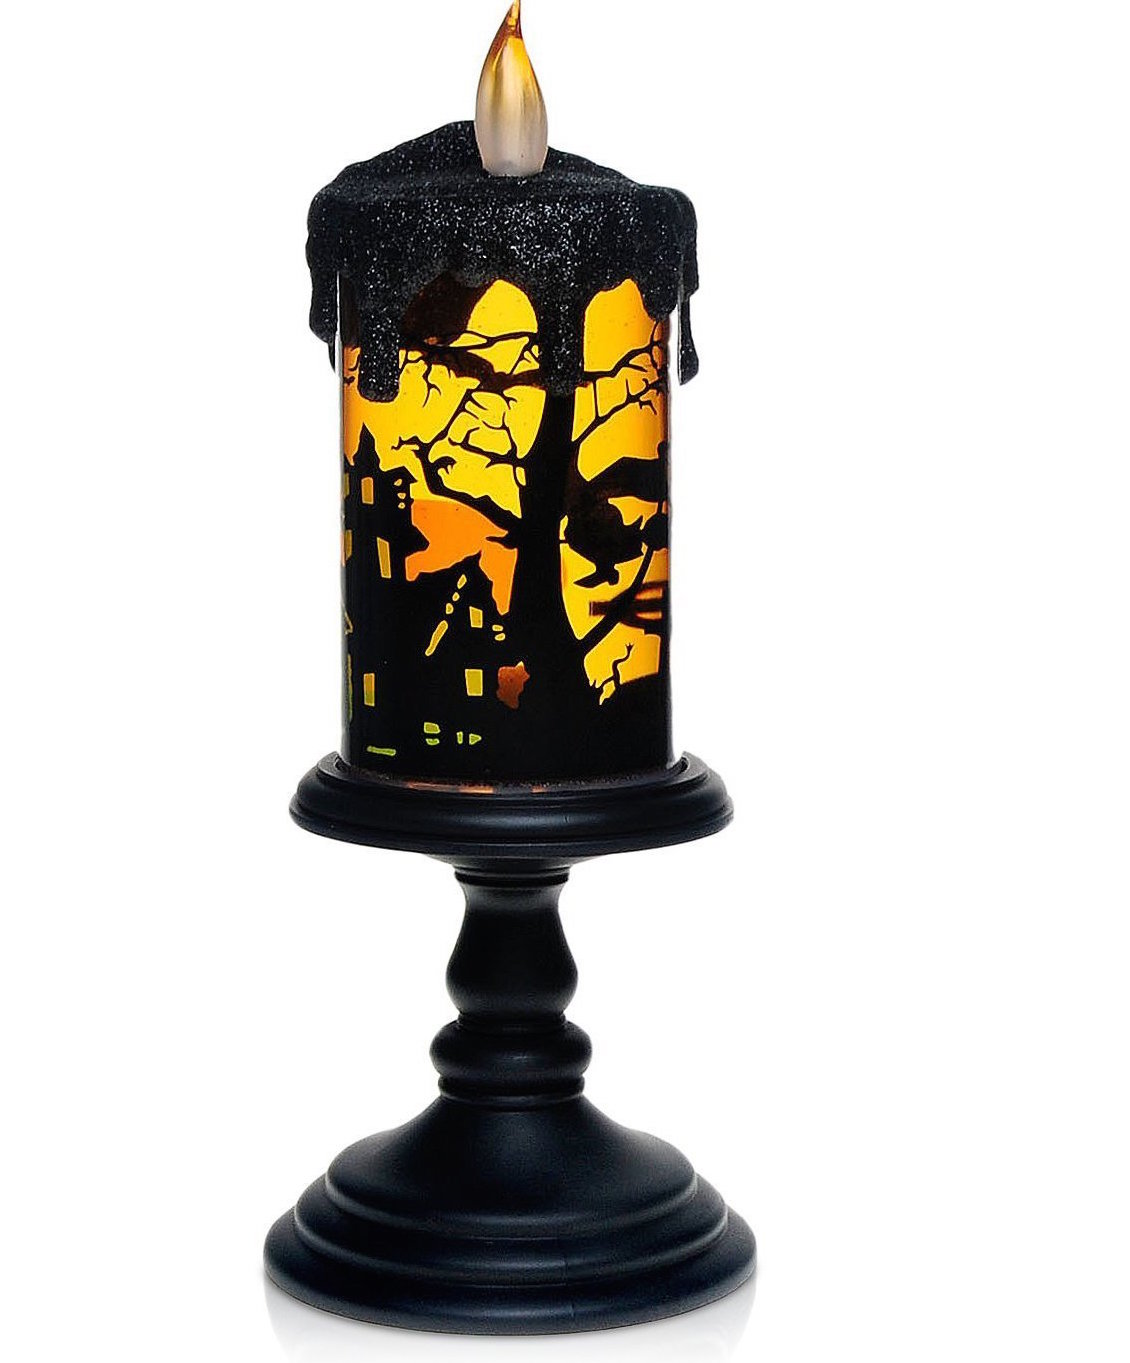 flameless candles,everplus bat tornado led candles with bat design